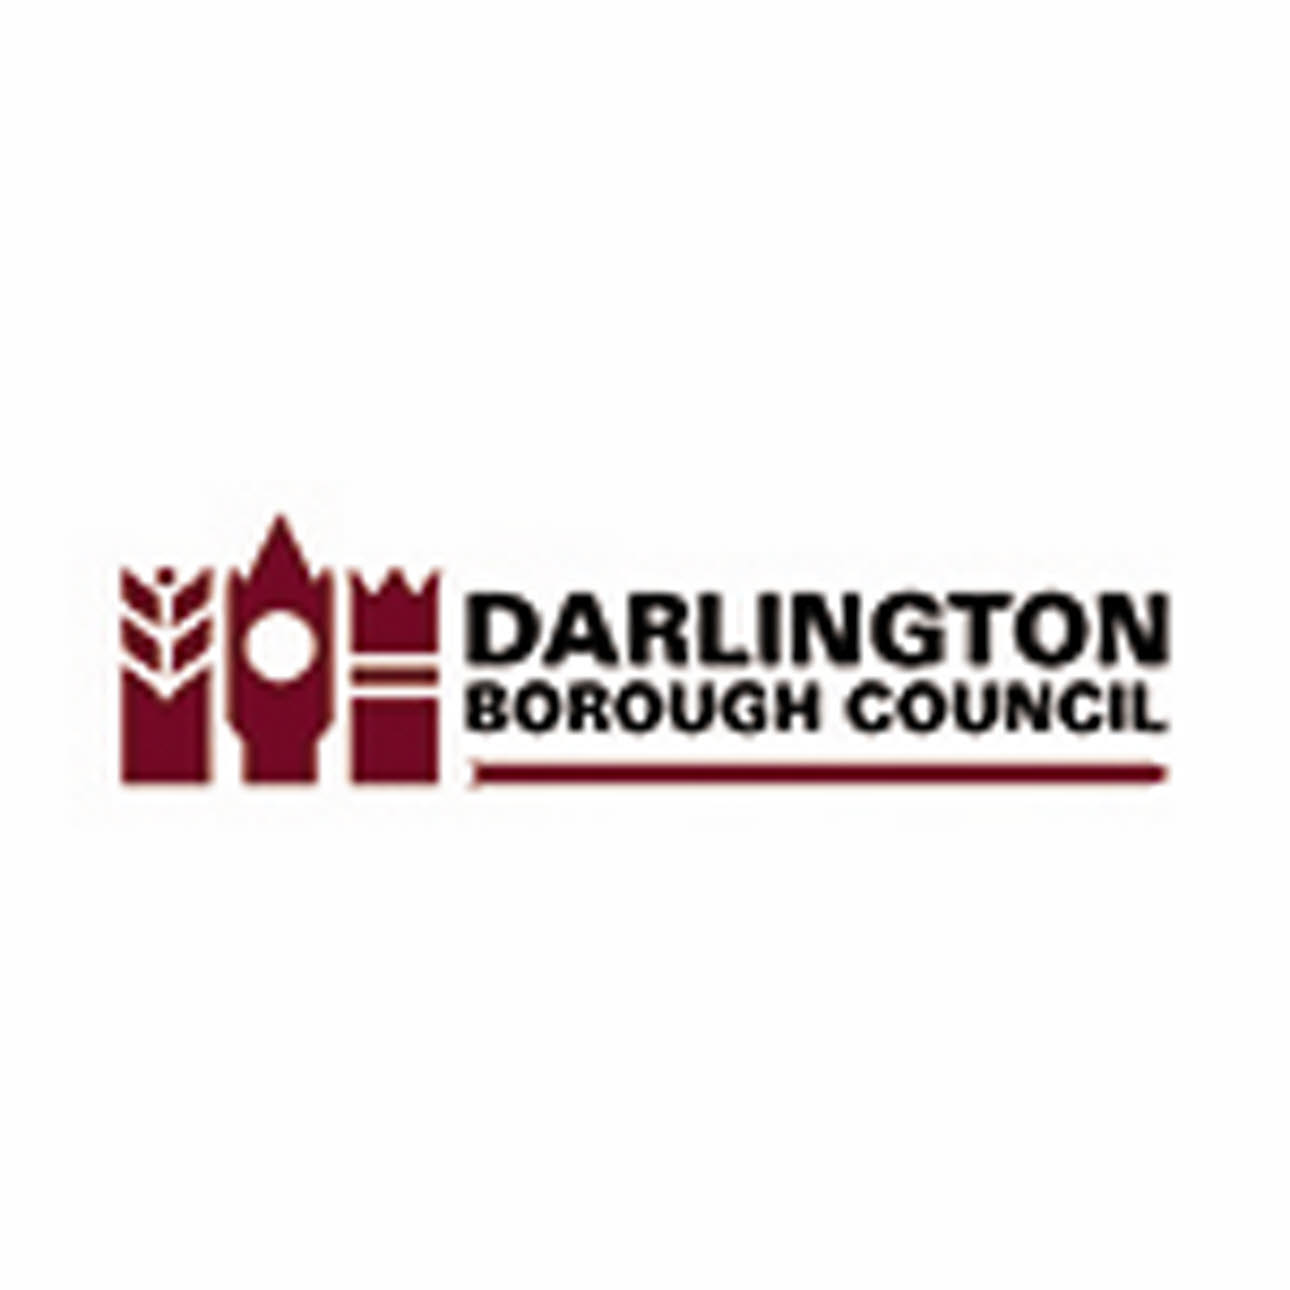 Darlington Borough Council logo